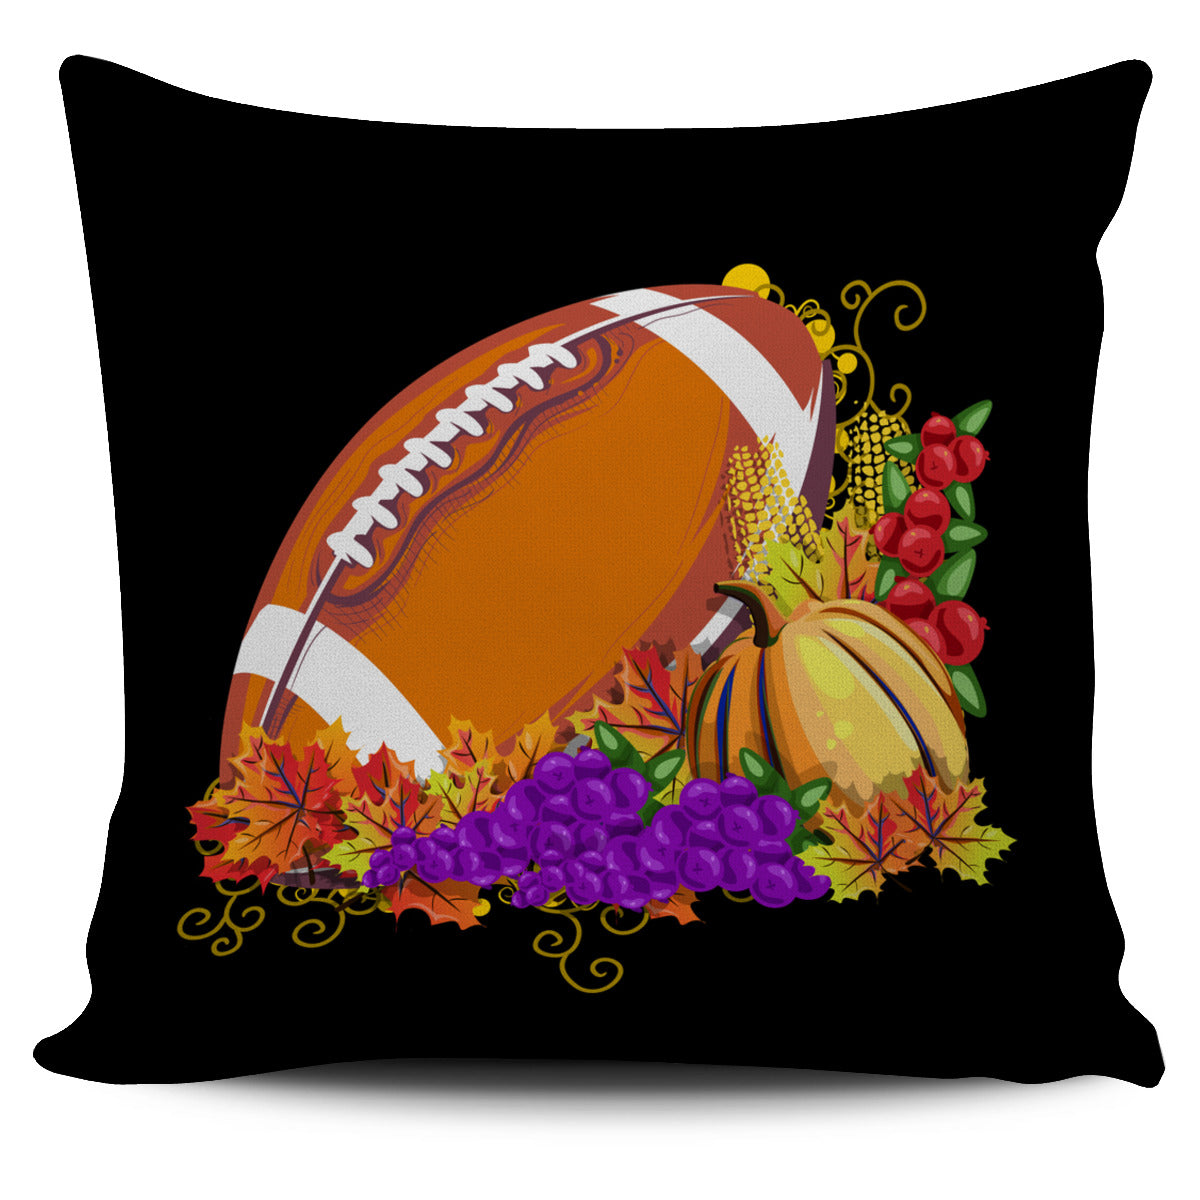 Football Autumn Leaves Grapes Pumpkin Pillow Cover EV81